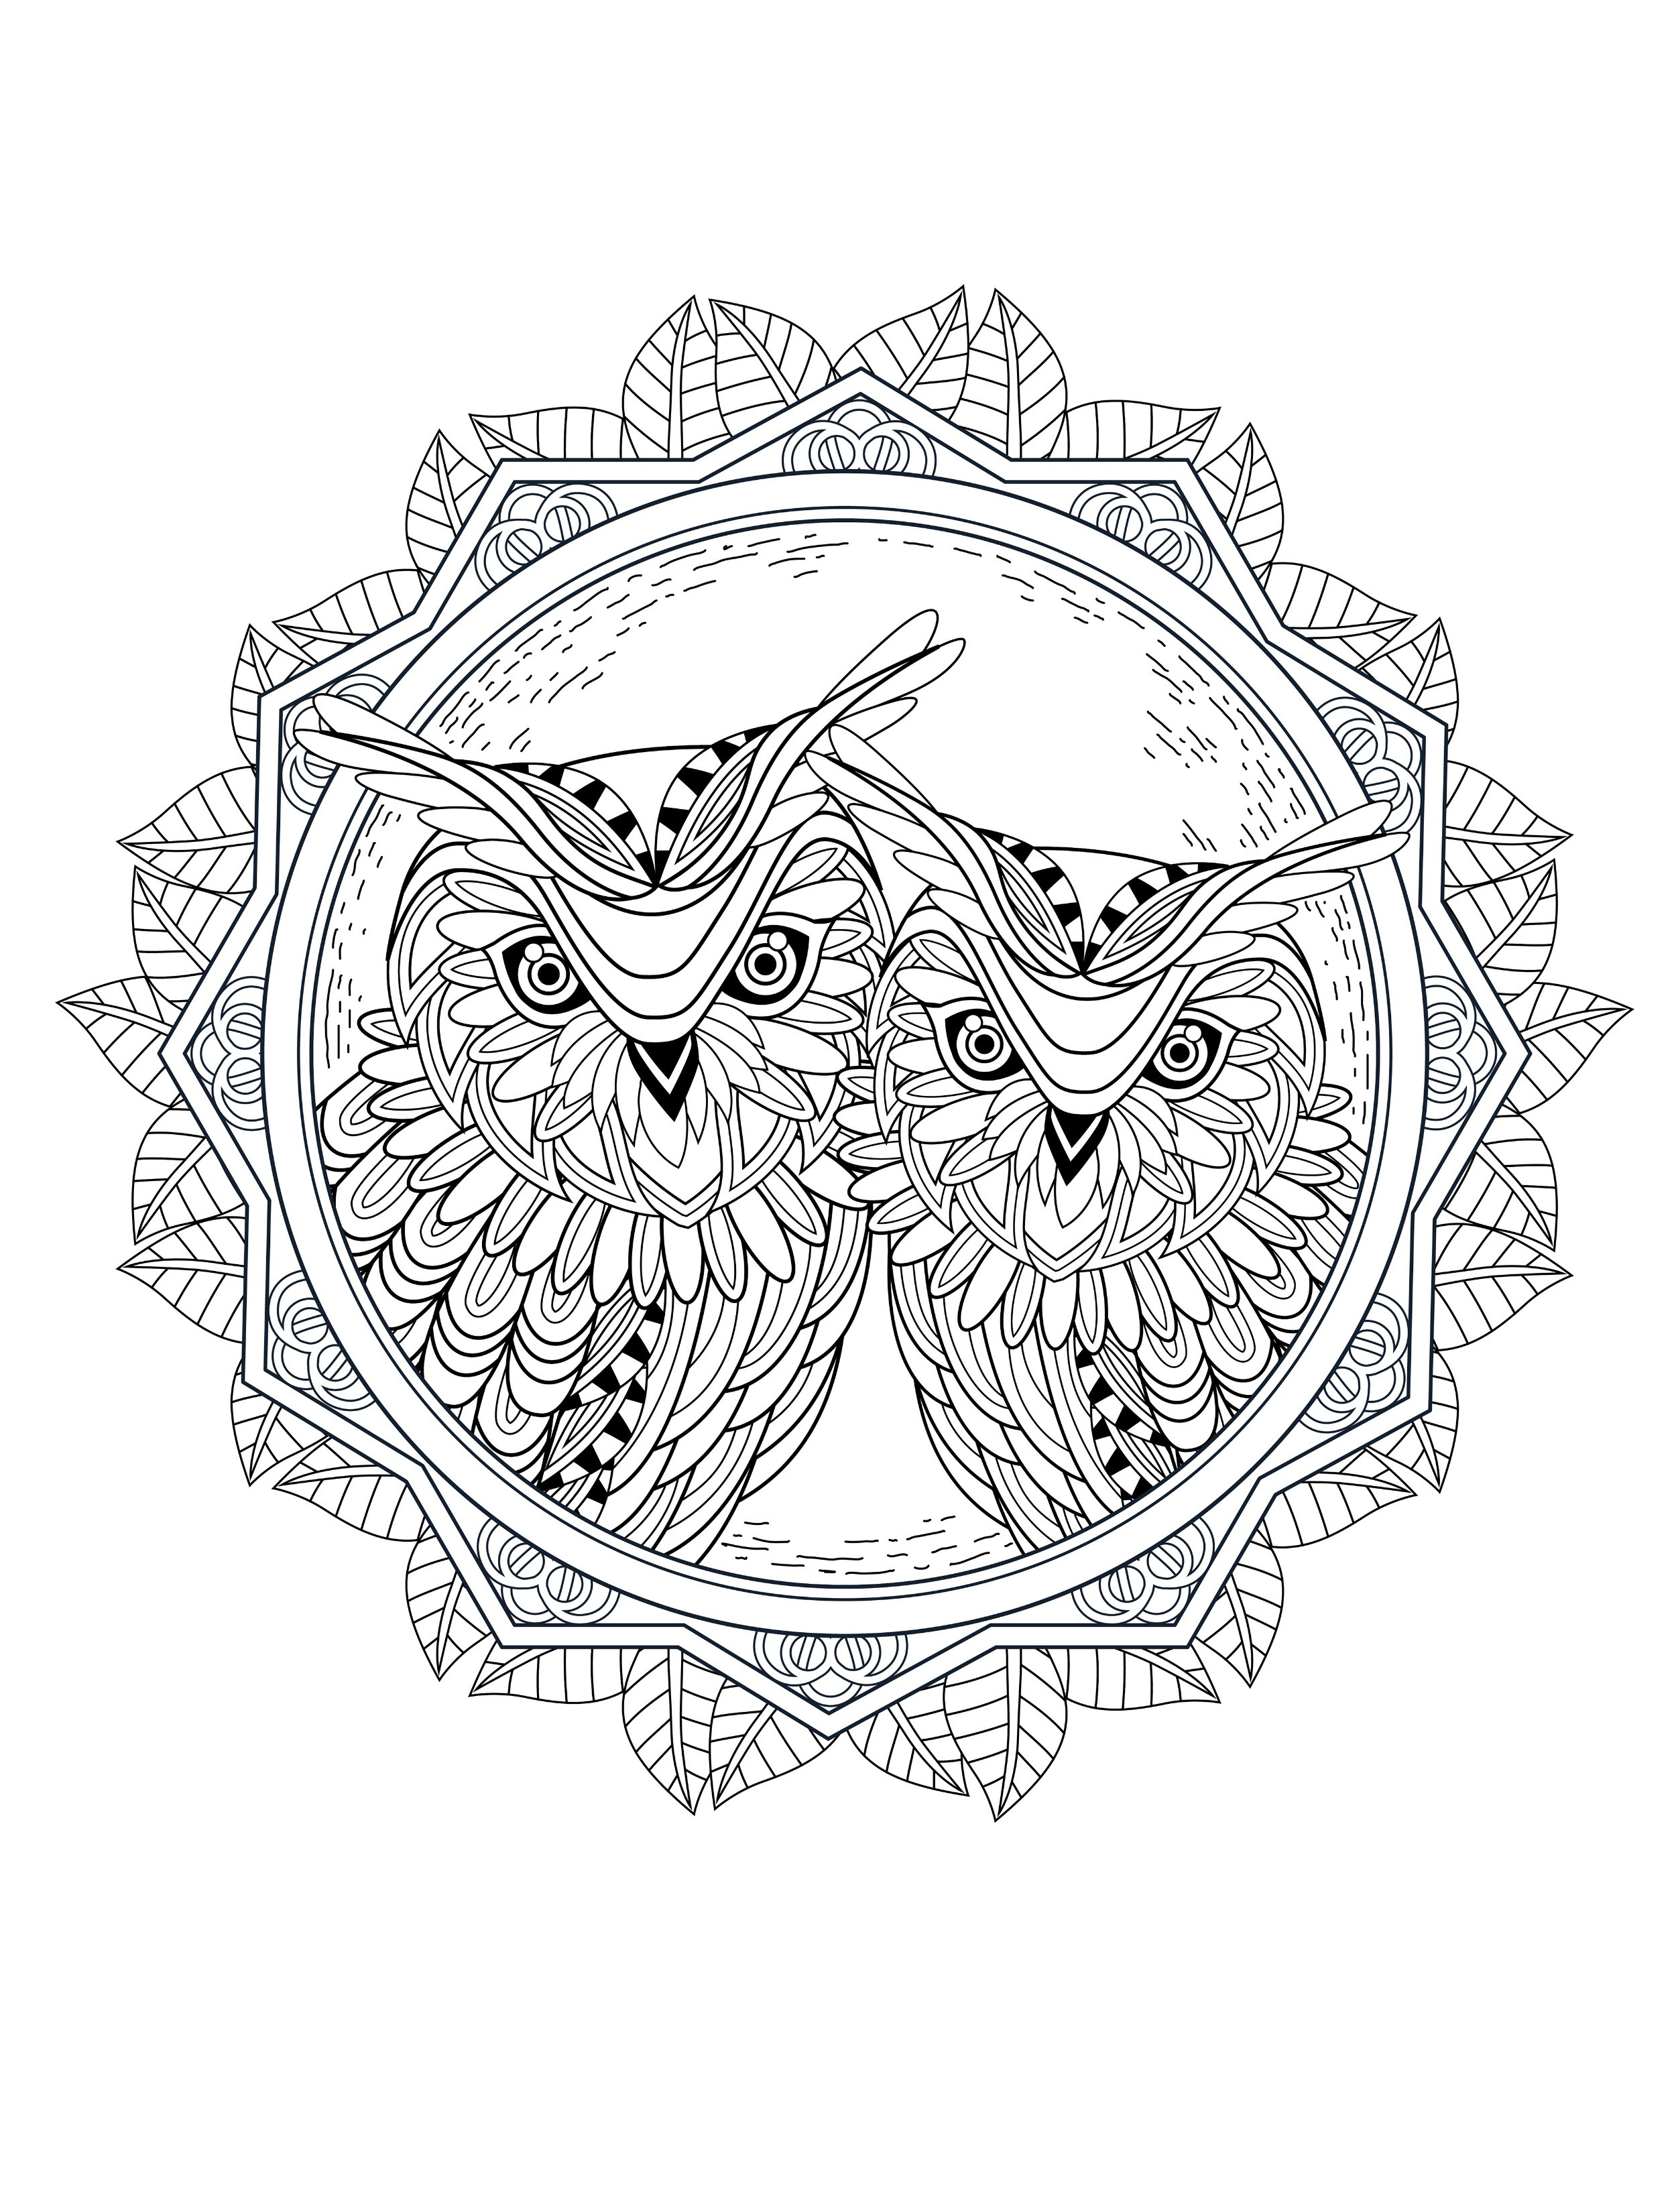 Best ideas about Coloring Books Adult . Save or Pin OWL Coloring Pages for Adults Free Detailed Owl Coloring Now.